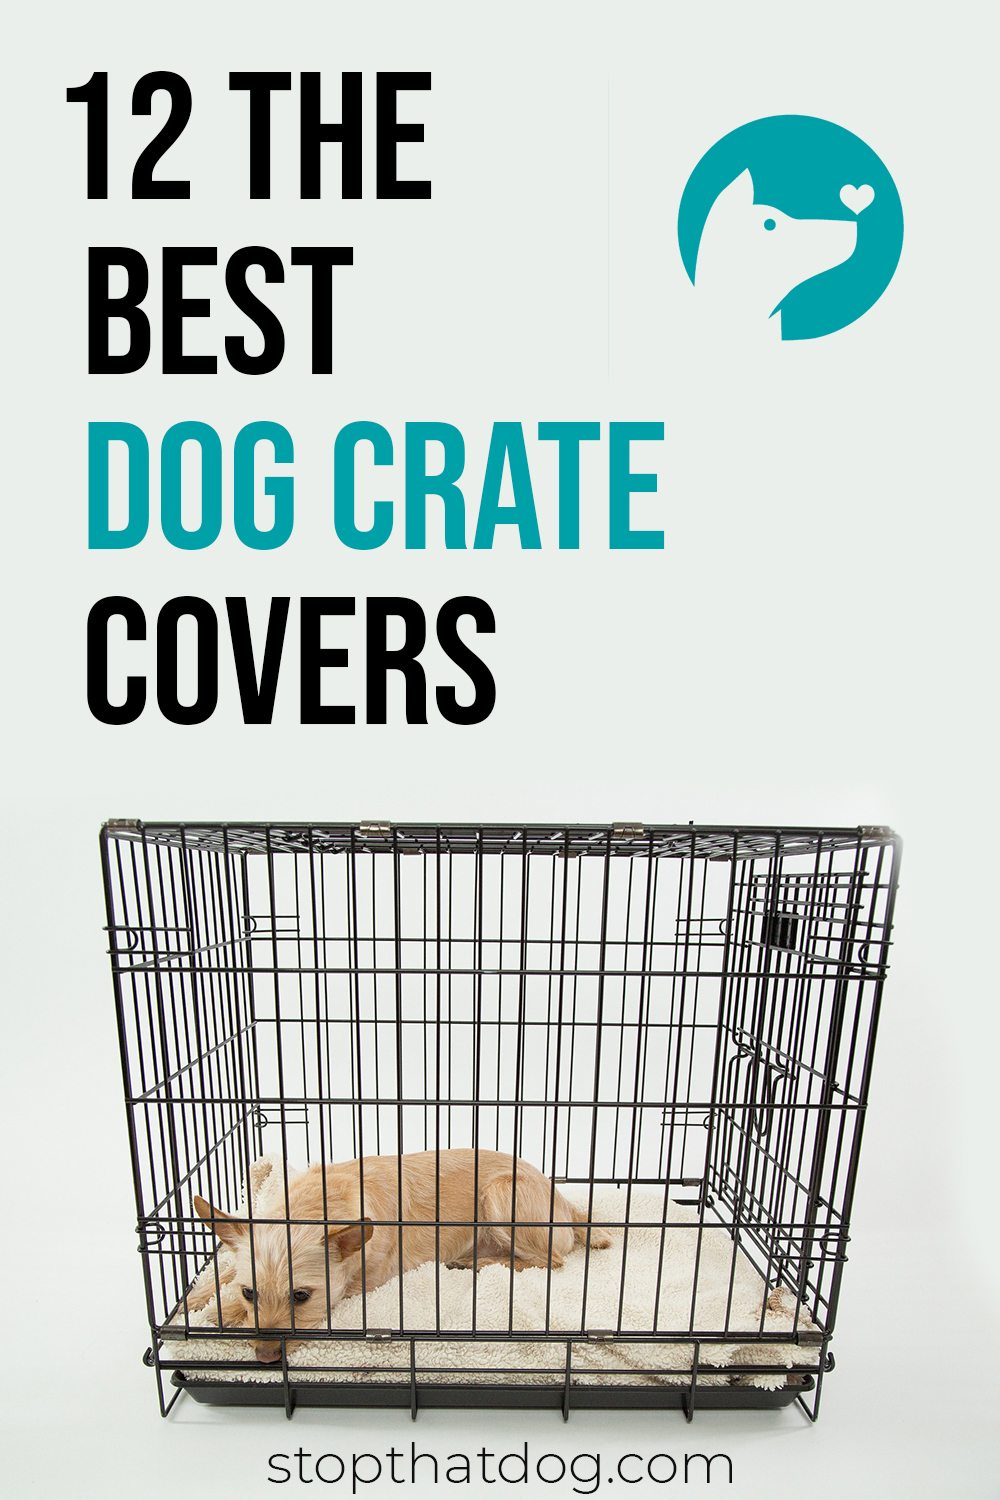 What Are The Best Dog Crate Covers In 2020?